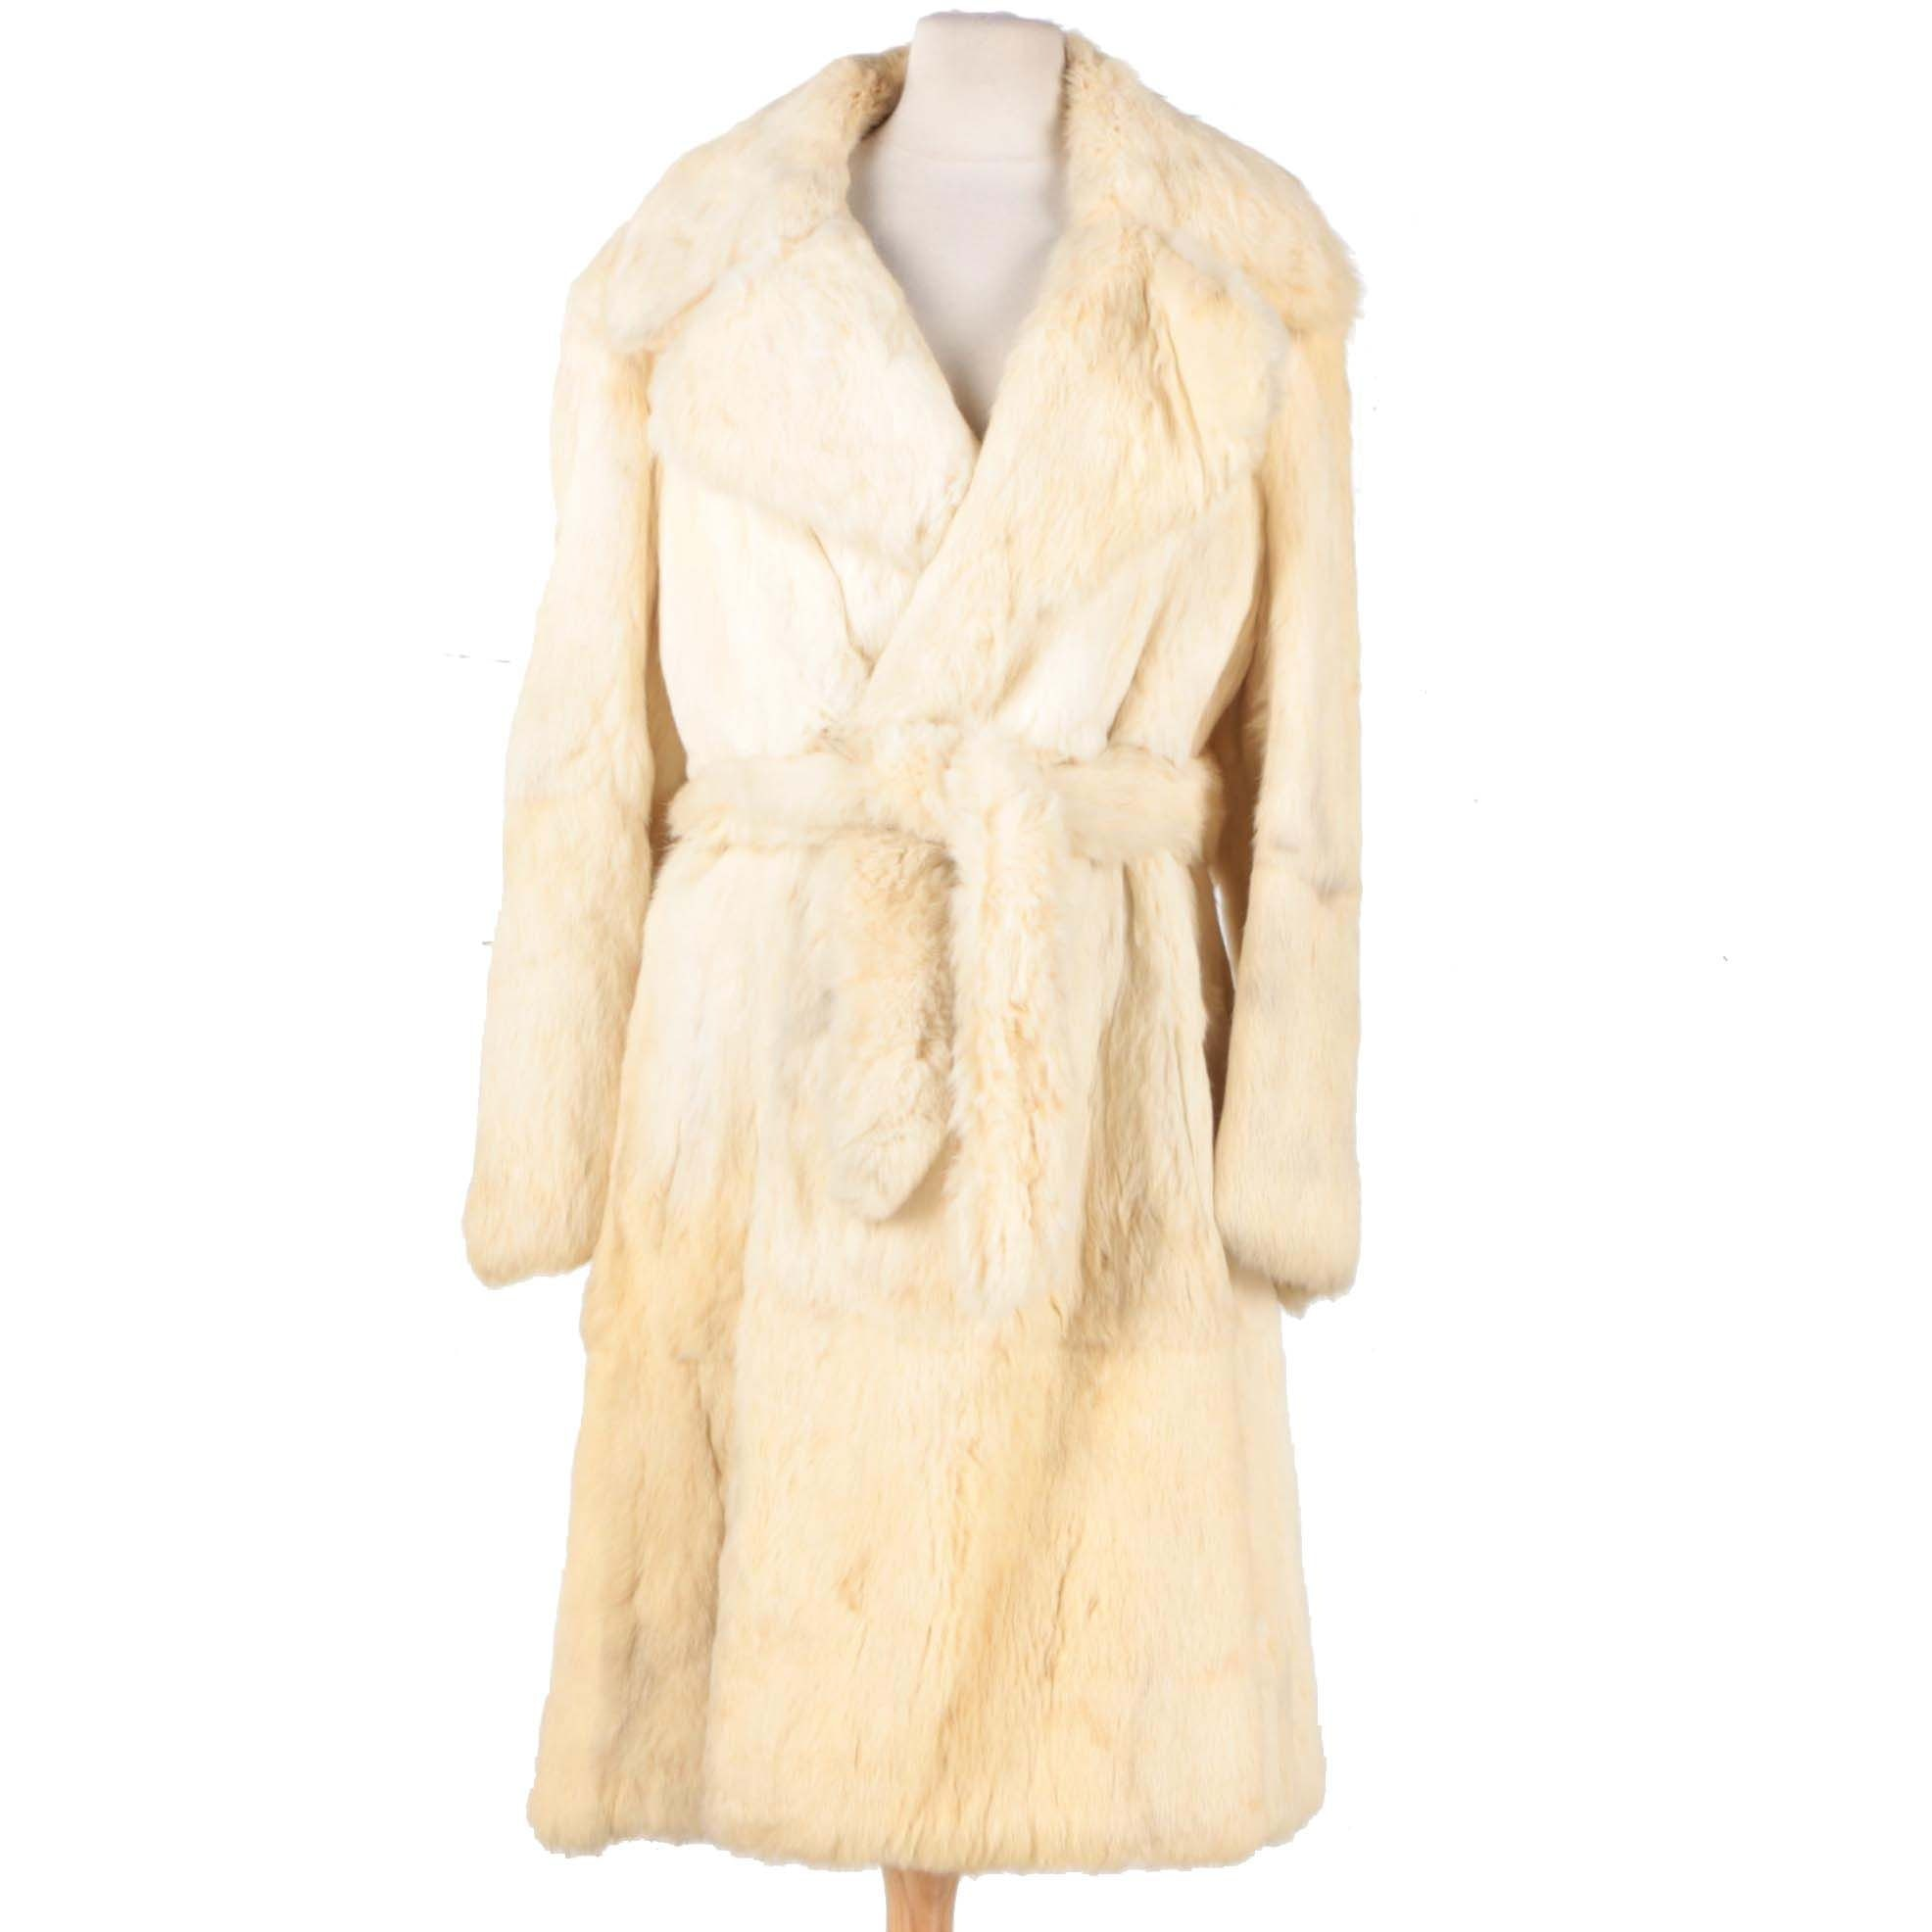 Evans Rabbit Fur Women's Coat